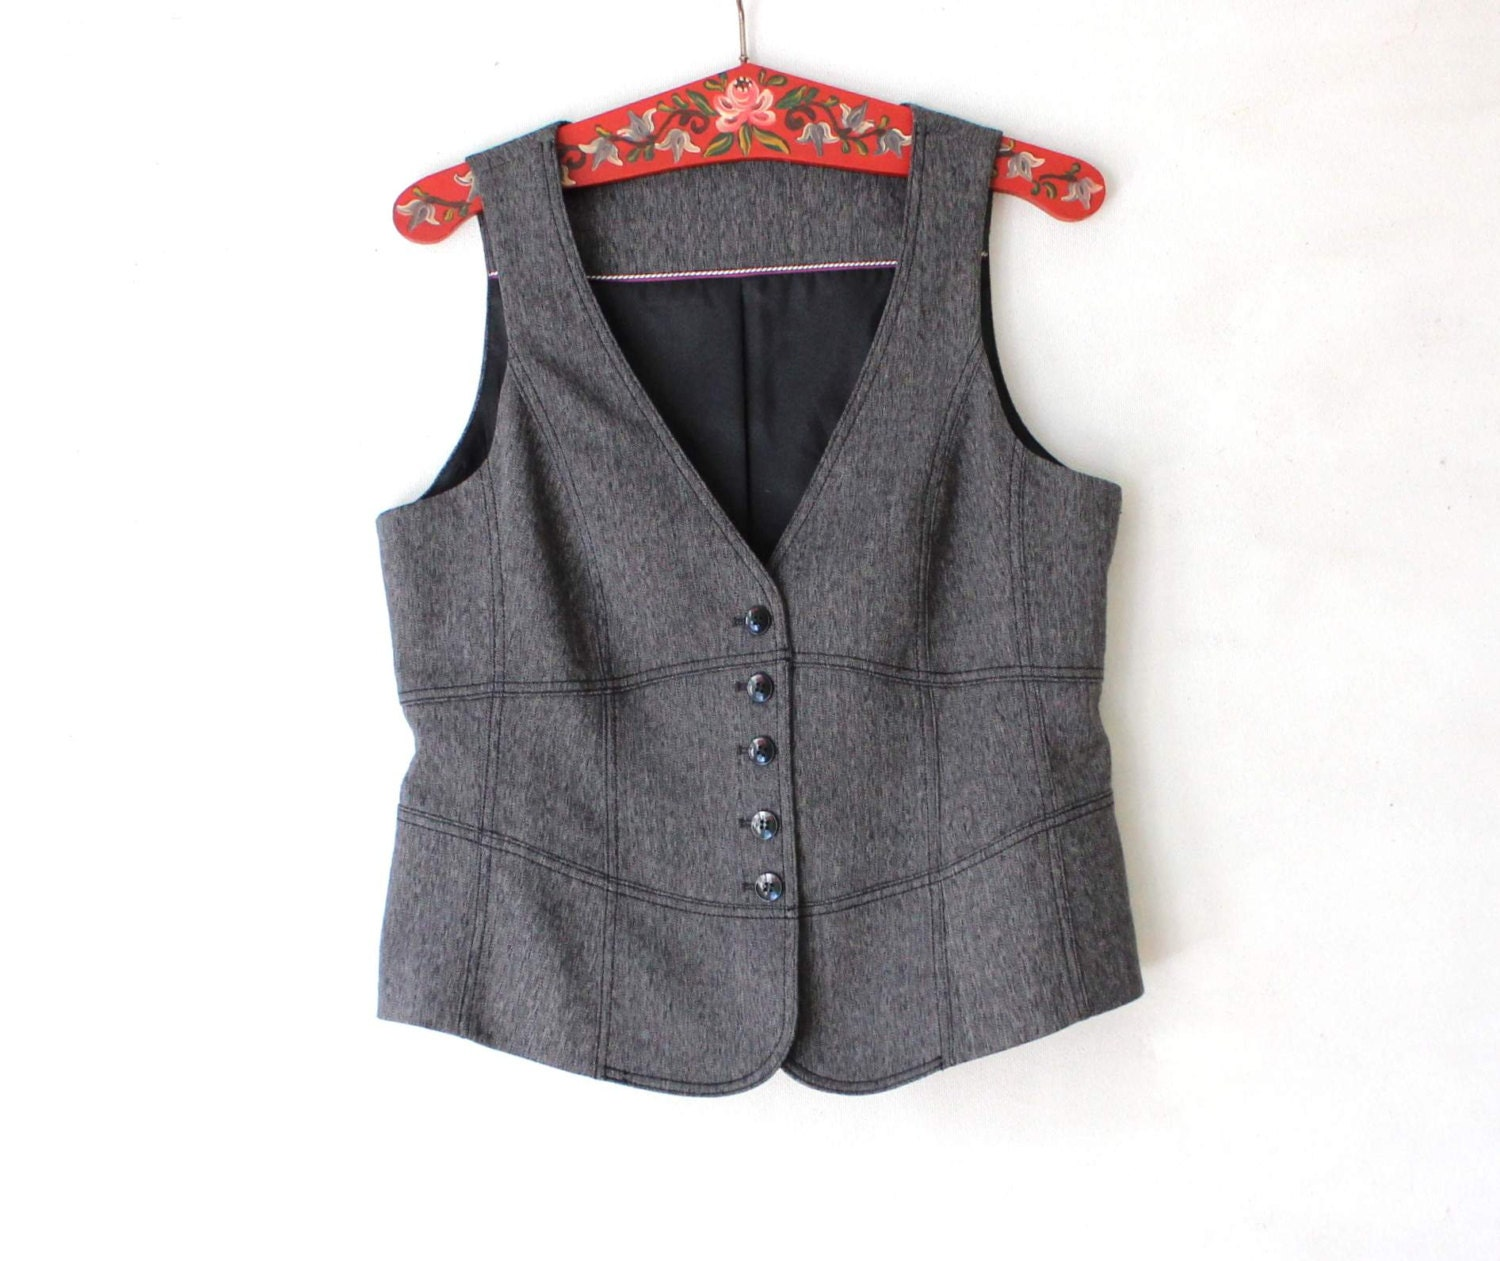 Luii Anthropologie Womens Herringbone Vest SZ M Luii Anthropologie Womens Herringbone Tweed Vest SZ M in a Polyester Wool blend, belted, two large front pockets. The necklace is not included but I do currently have the necklace listed for sale.